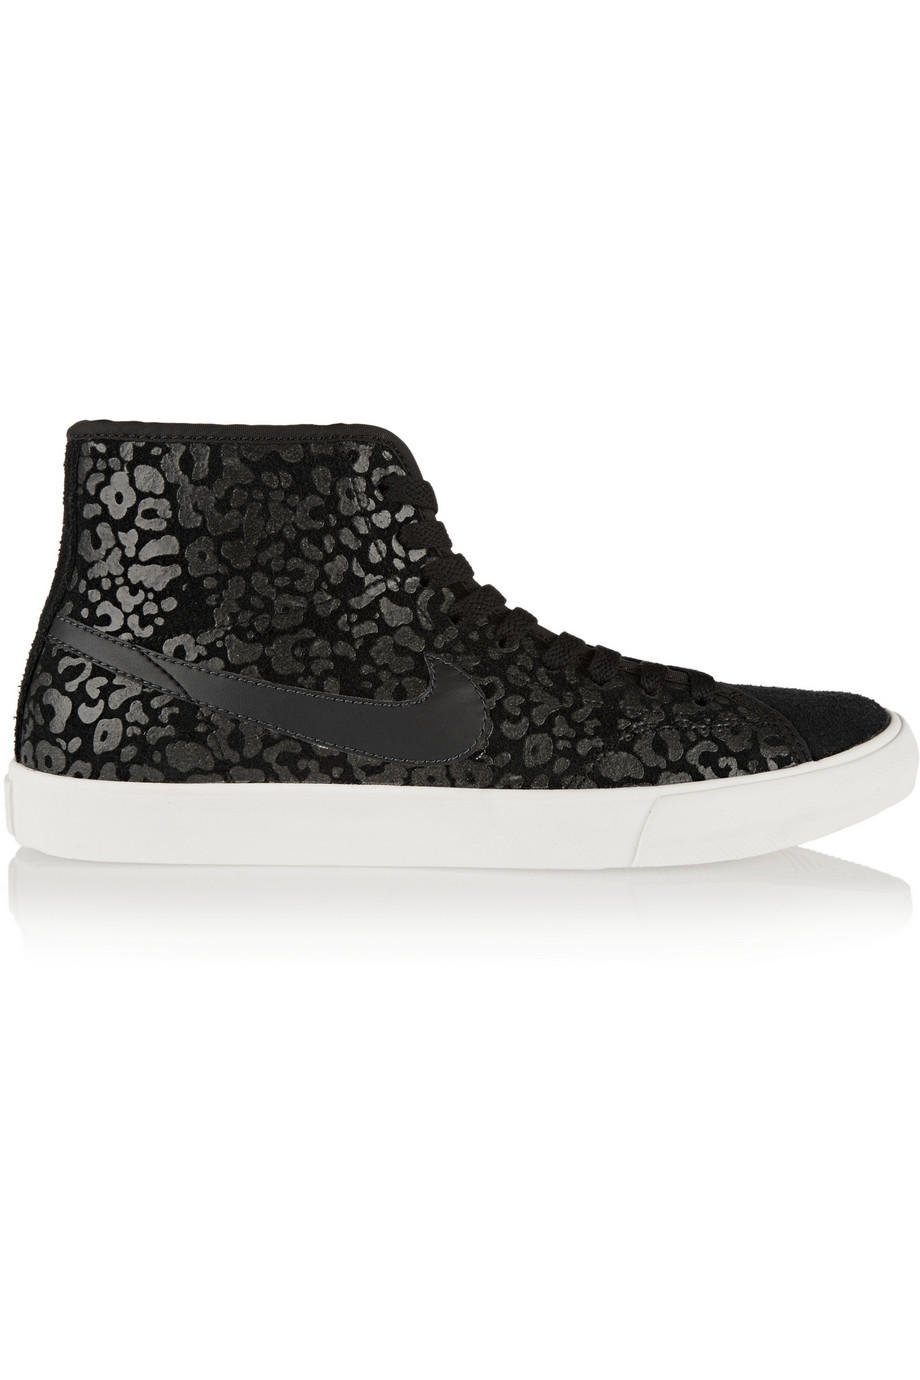 aad569e4a2b1 Nike - Primo Court leopard-print suede from NET-A-PORTER | Things